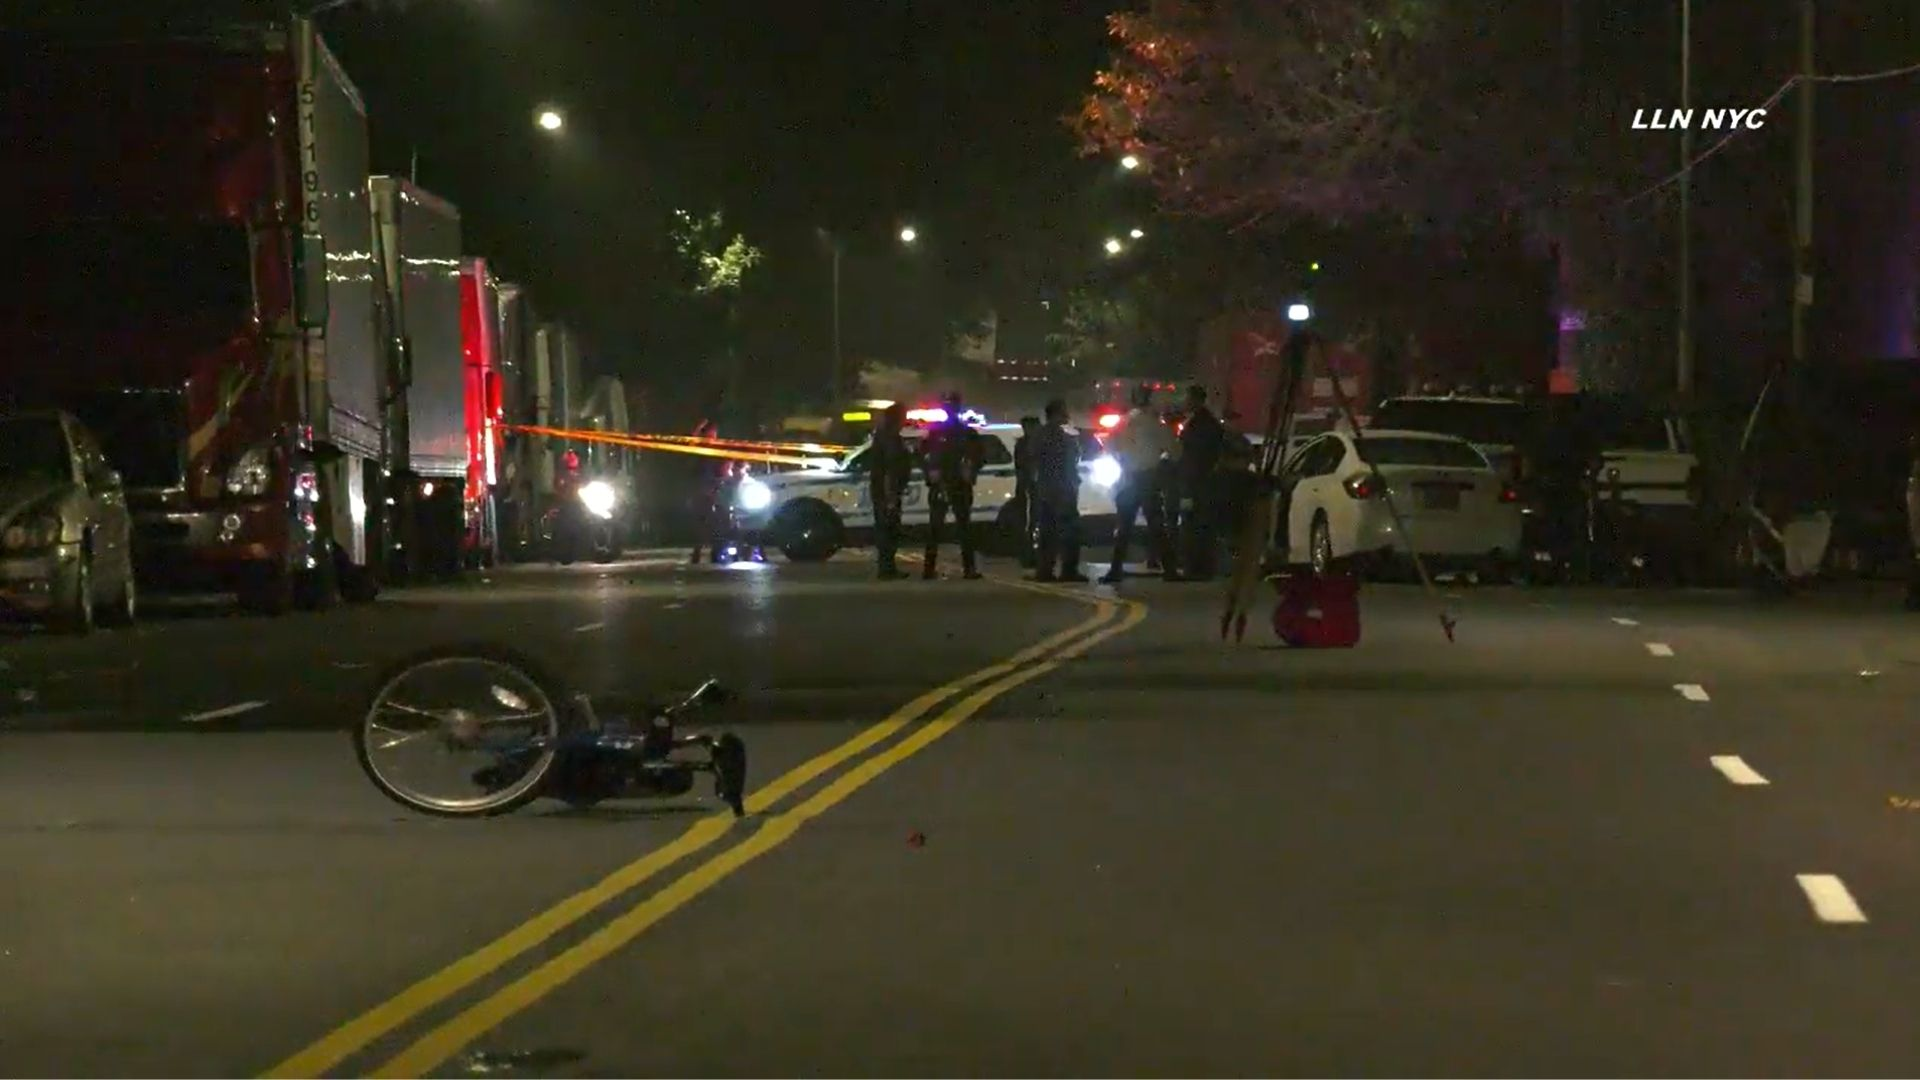 Scene after a cyclist was struck in the Bronx